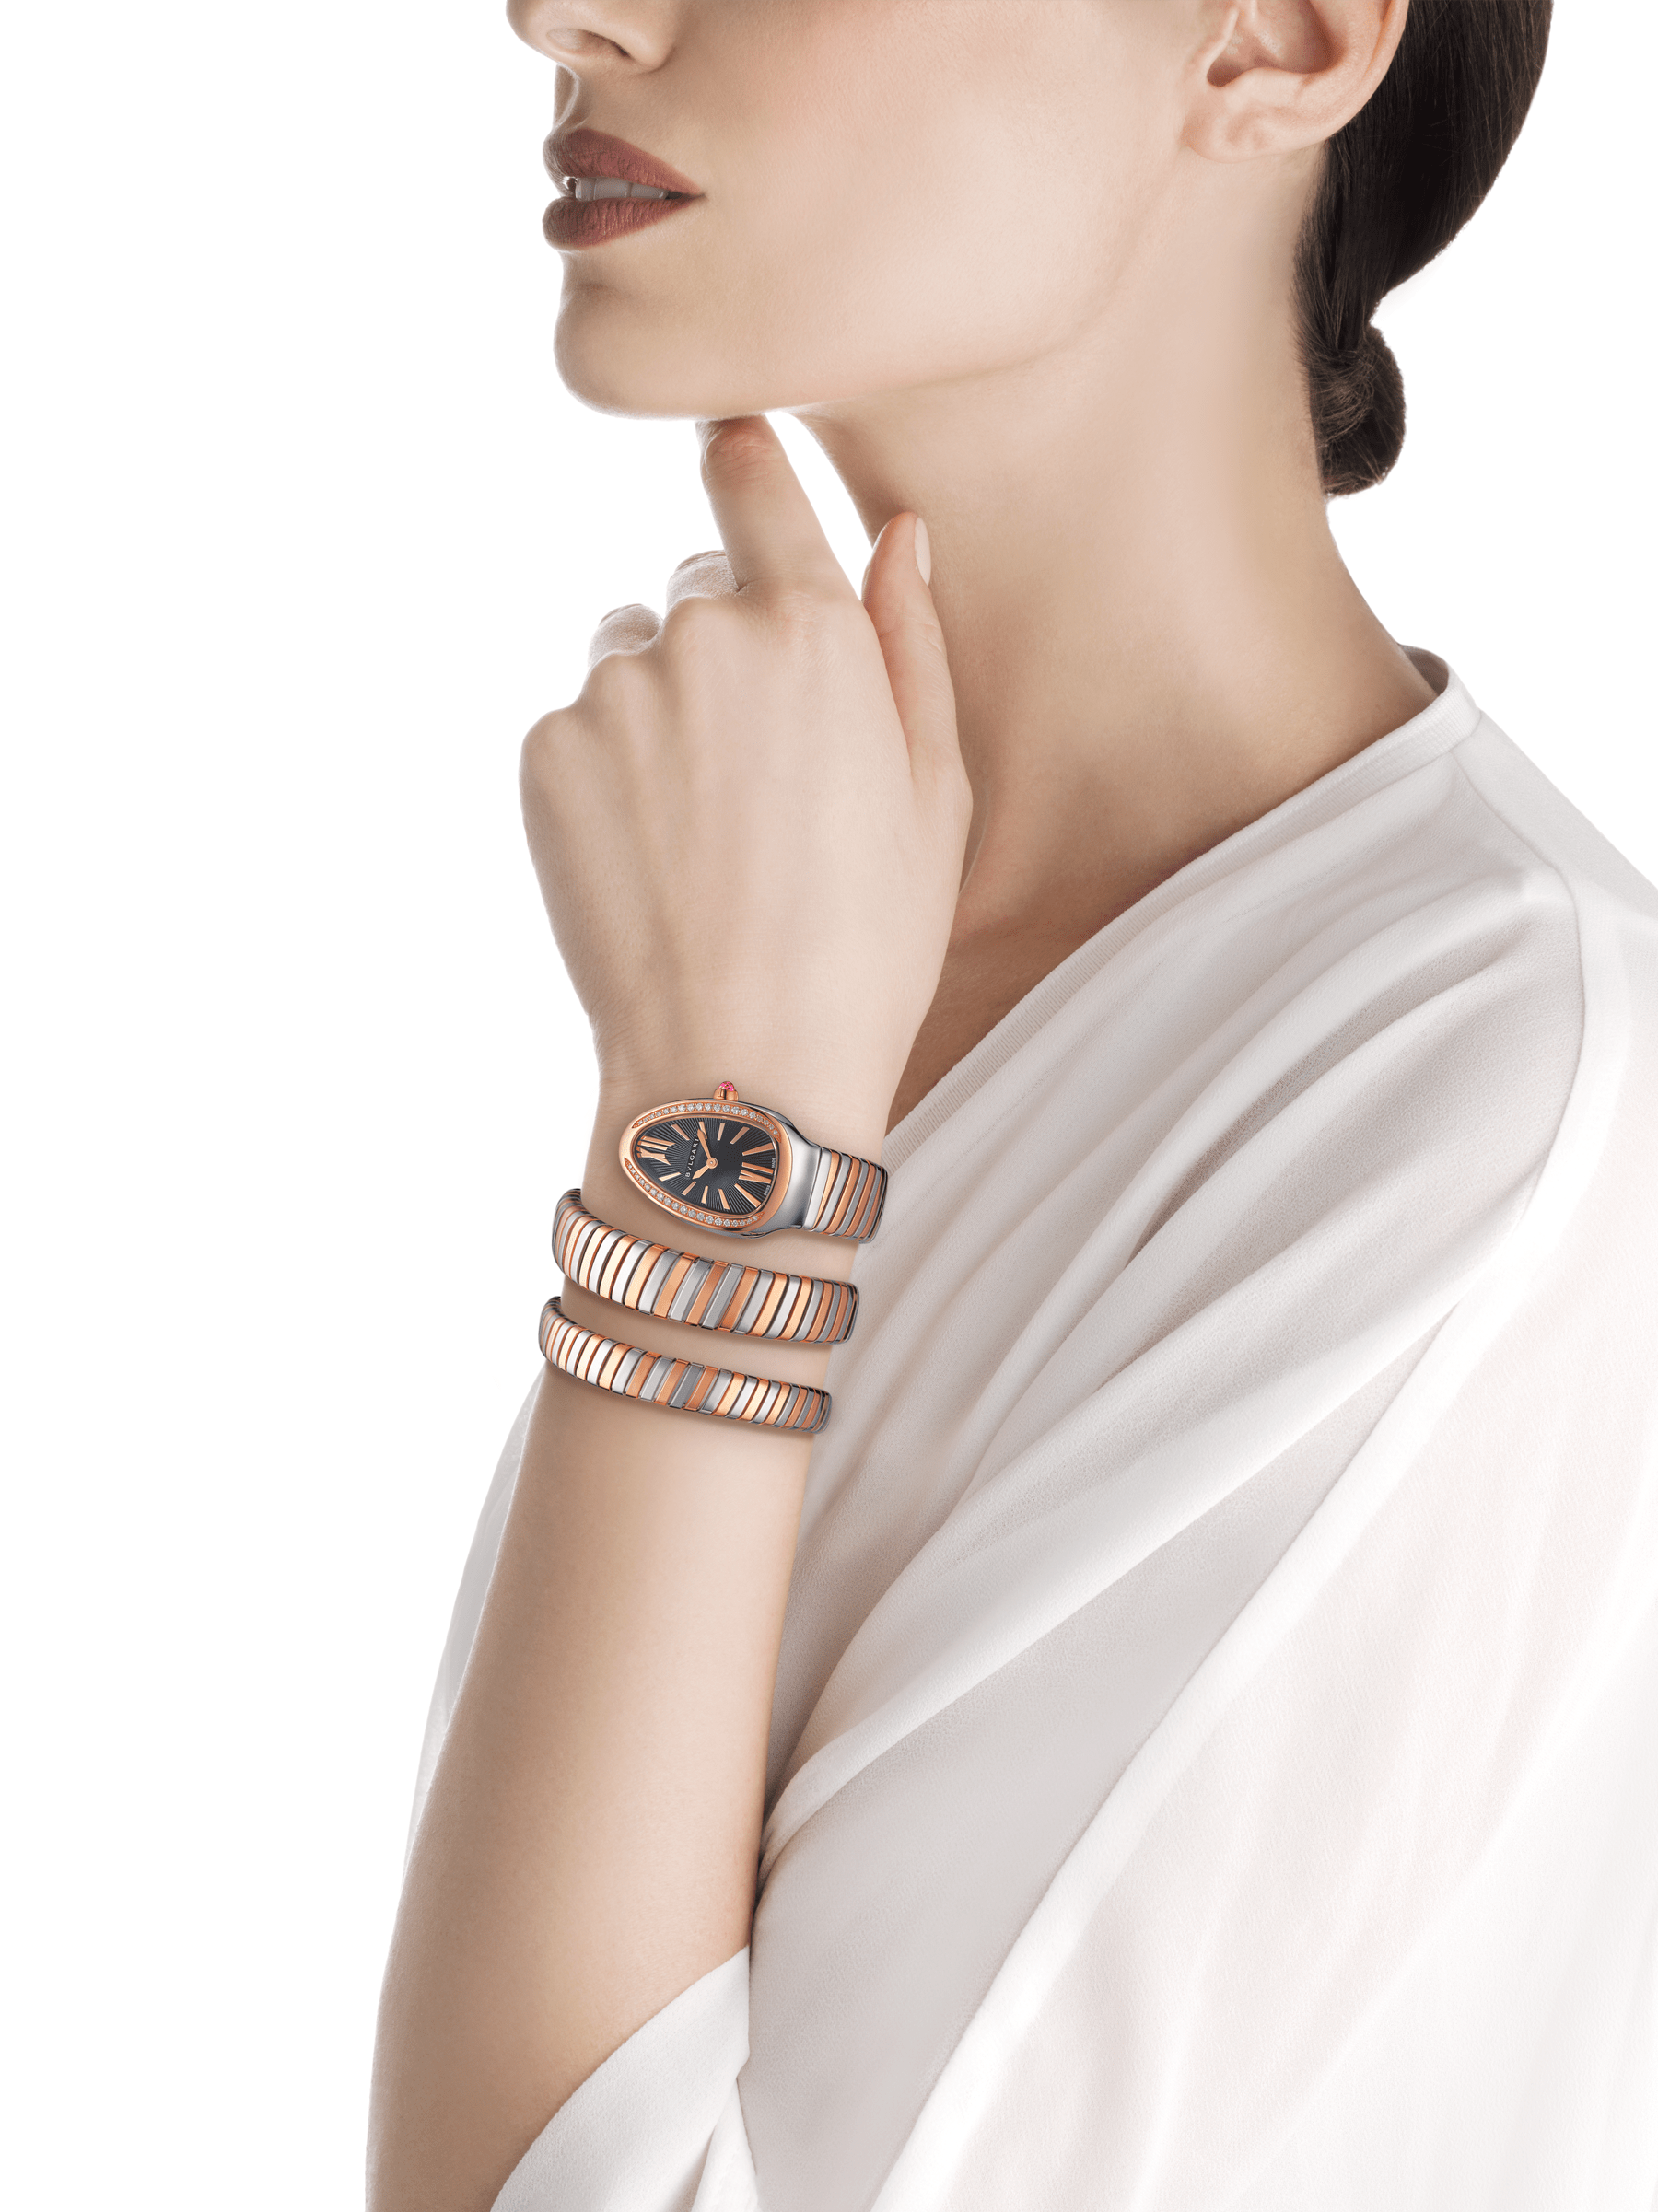 Serpenti Tubogas double spiral watch with stainless steel case, 18 kt rose gold bezel set with brilliant cut diamonds, black opaline dial, 18 kt rose gold and stainless steel bracelet. 102099 image 4